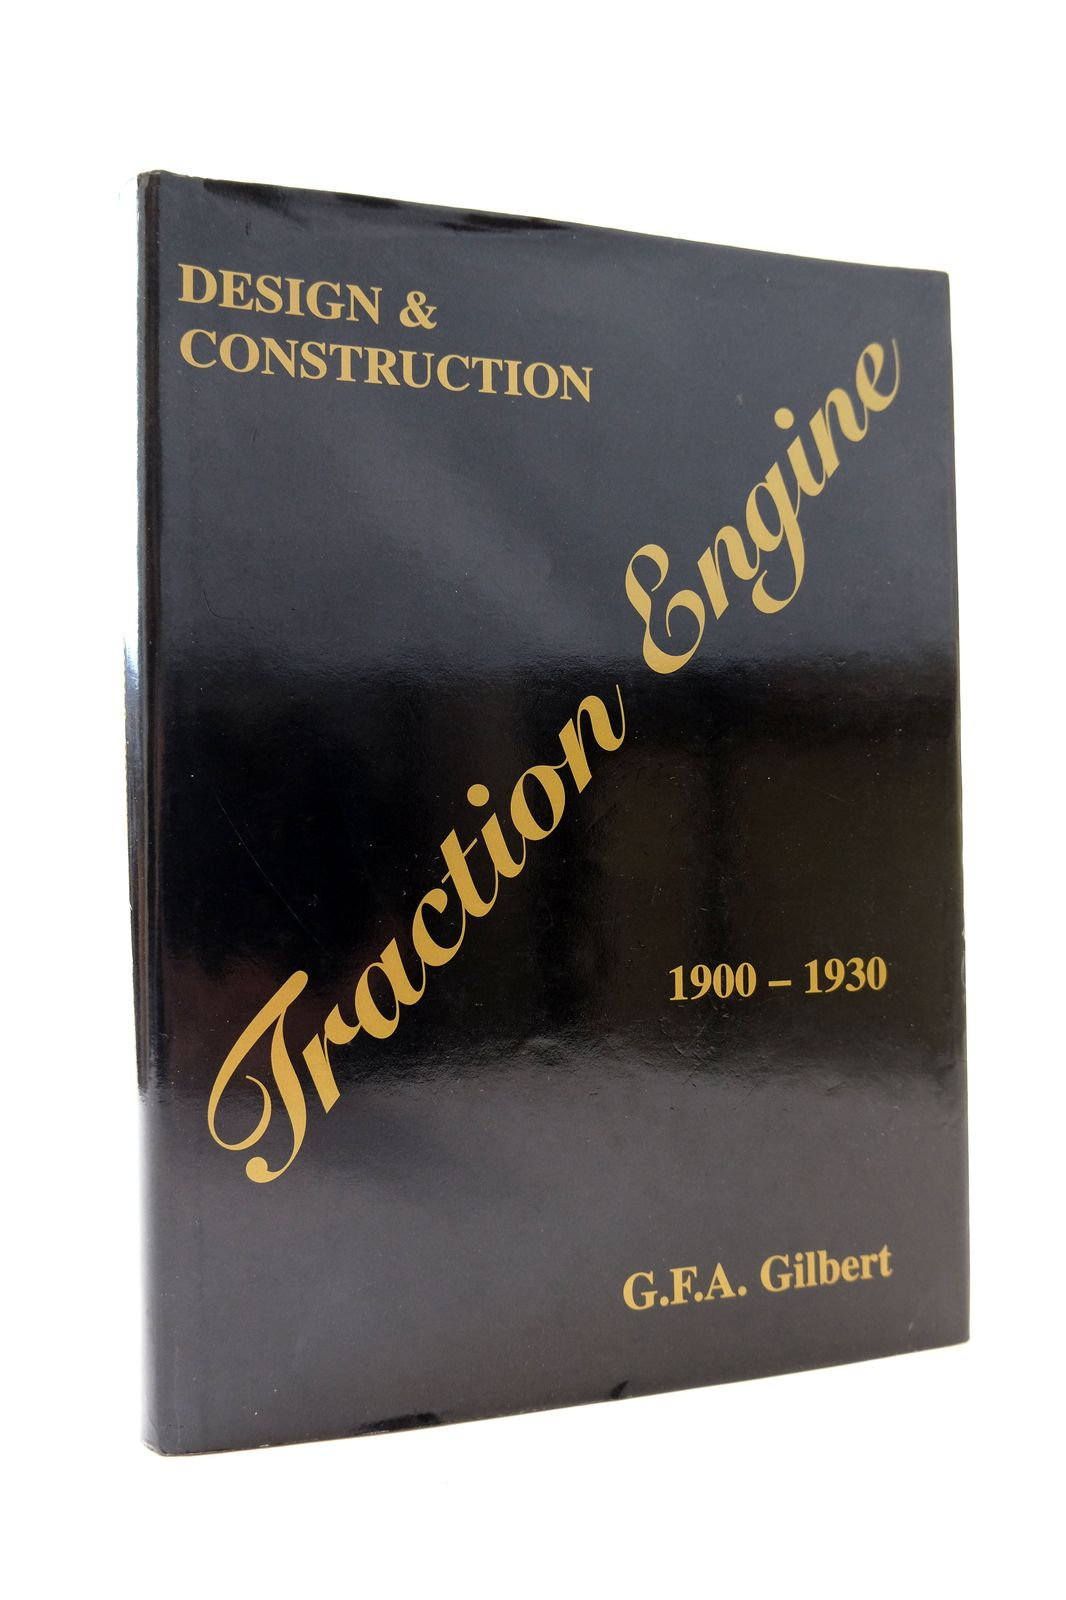 Photo of TRACTION ENGINE DESIGN AND CONSTRUCTION 1900-1930 written by Gilbert, G.F.A. published by Geoffrey Gilbert (STOCK CODE: 1818688)  for sale by Stella & Rose's Books